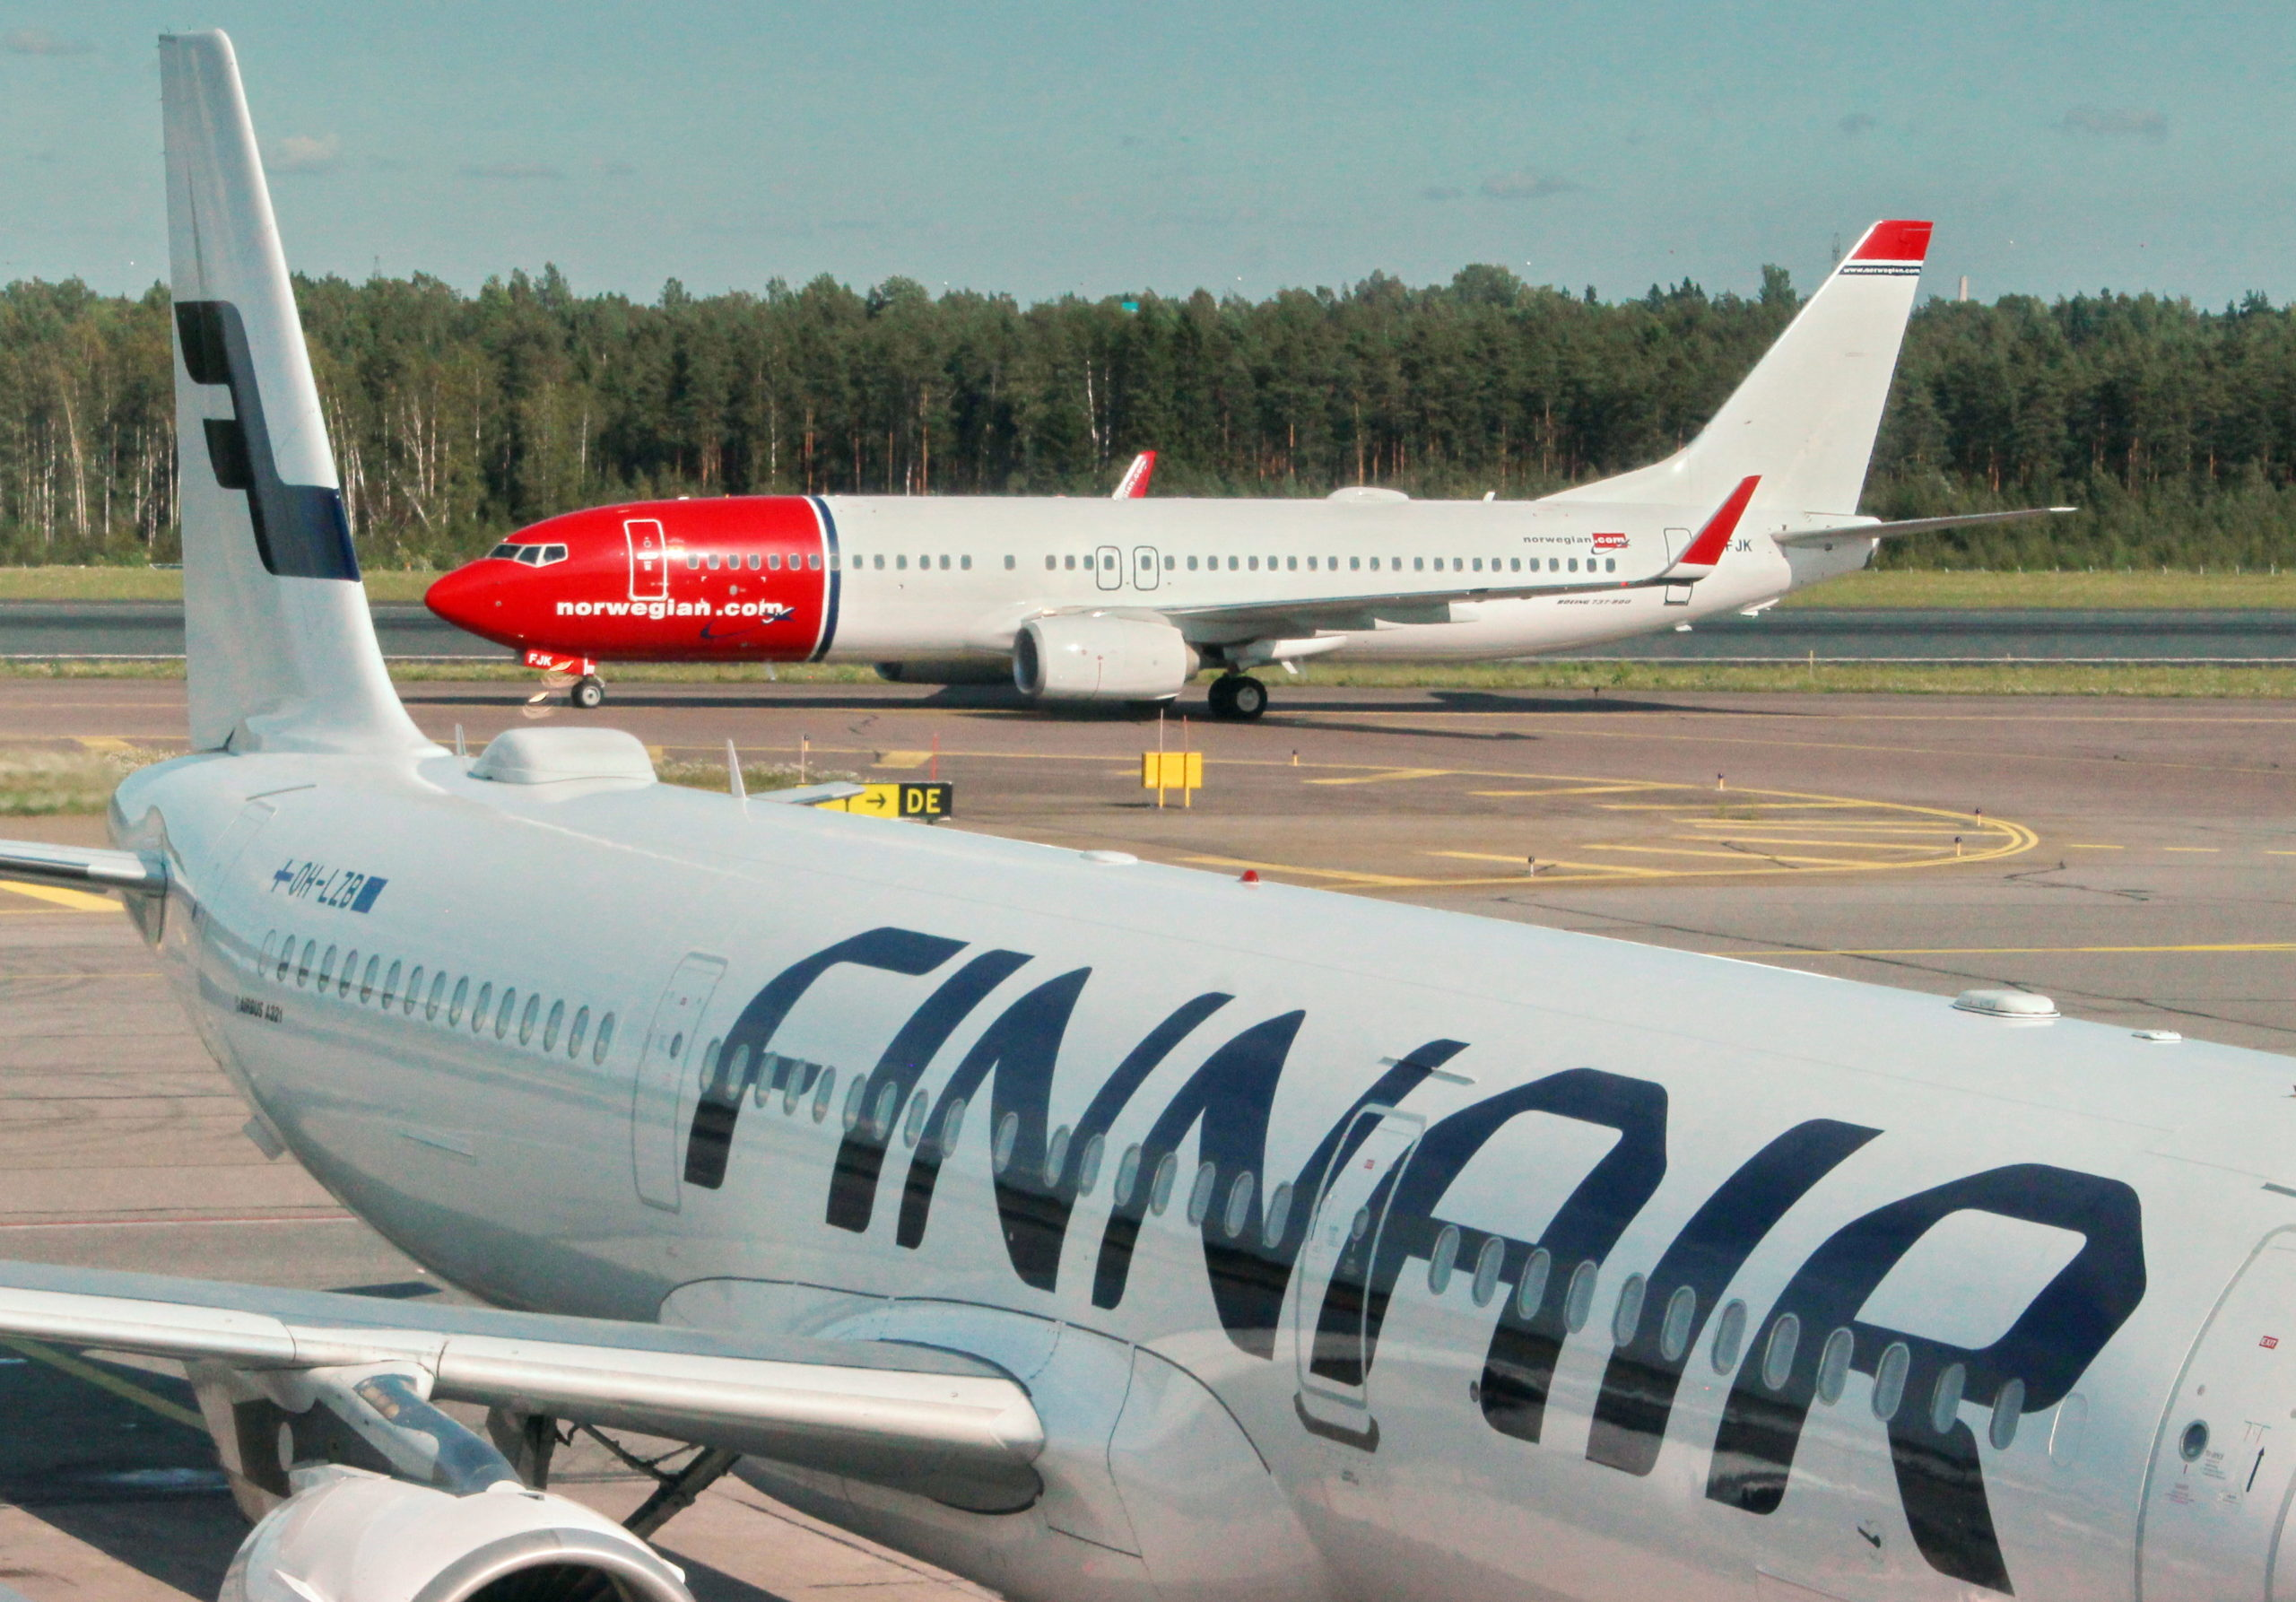 Norwegian-og-Finnair-scaled.jpg